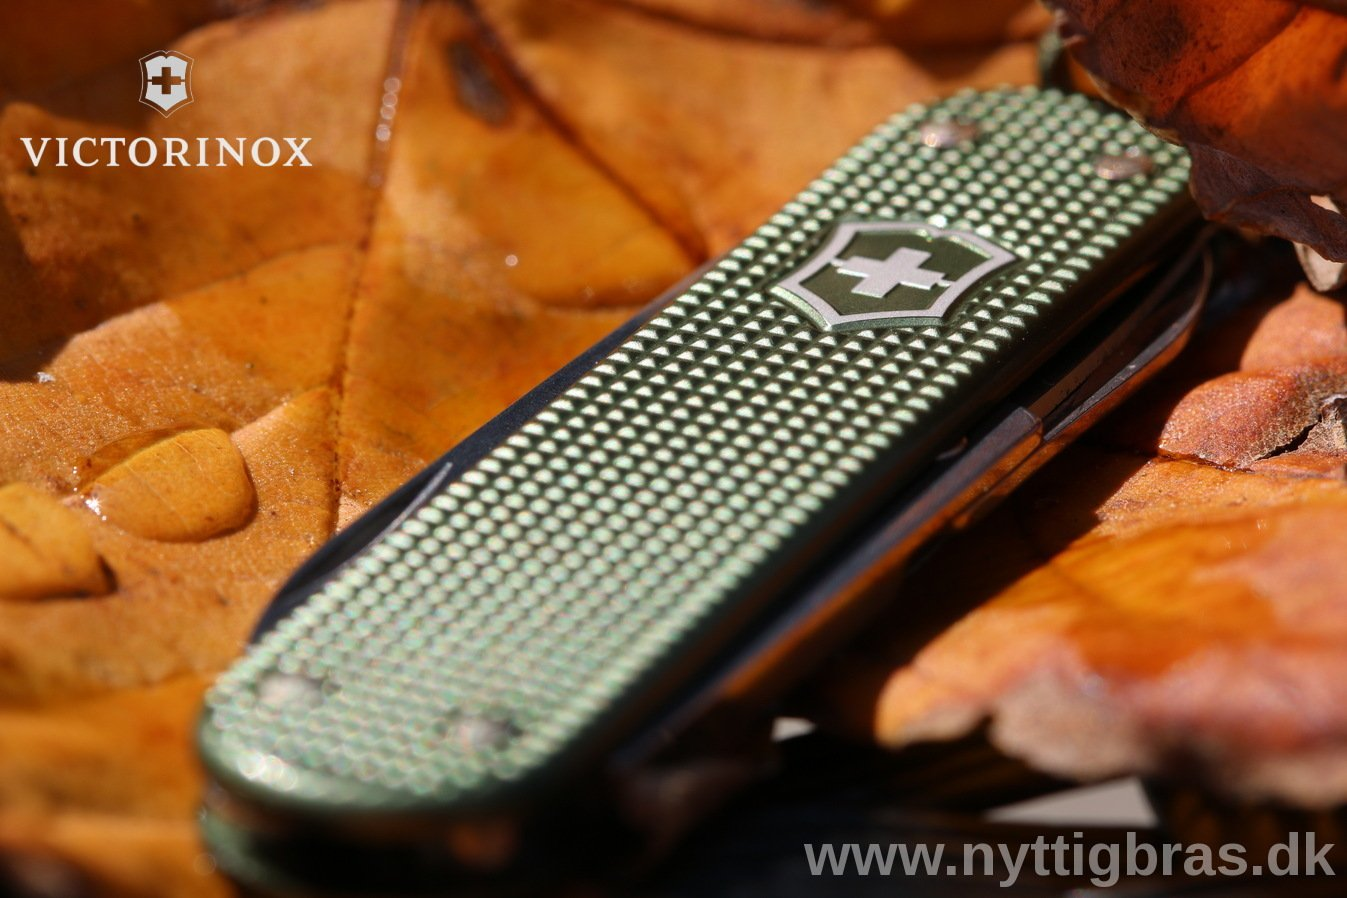 Makro foto af Victorinox Alox Classic 2017 Limited Edition Olive